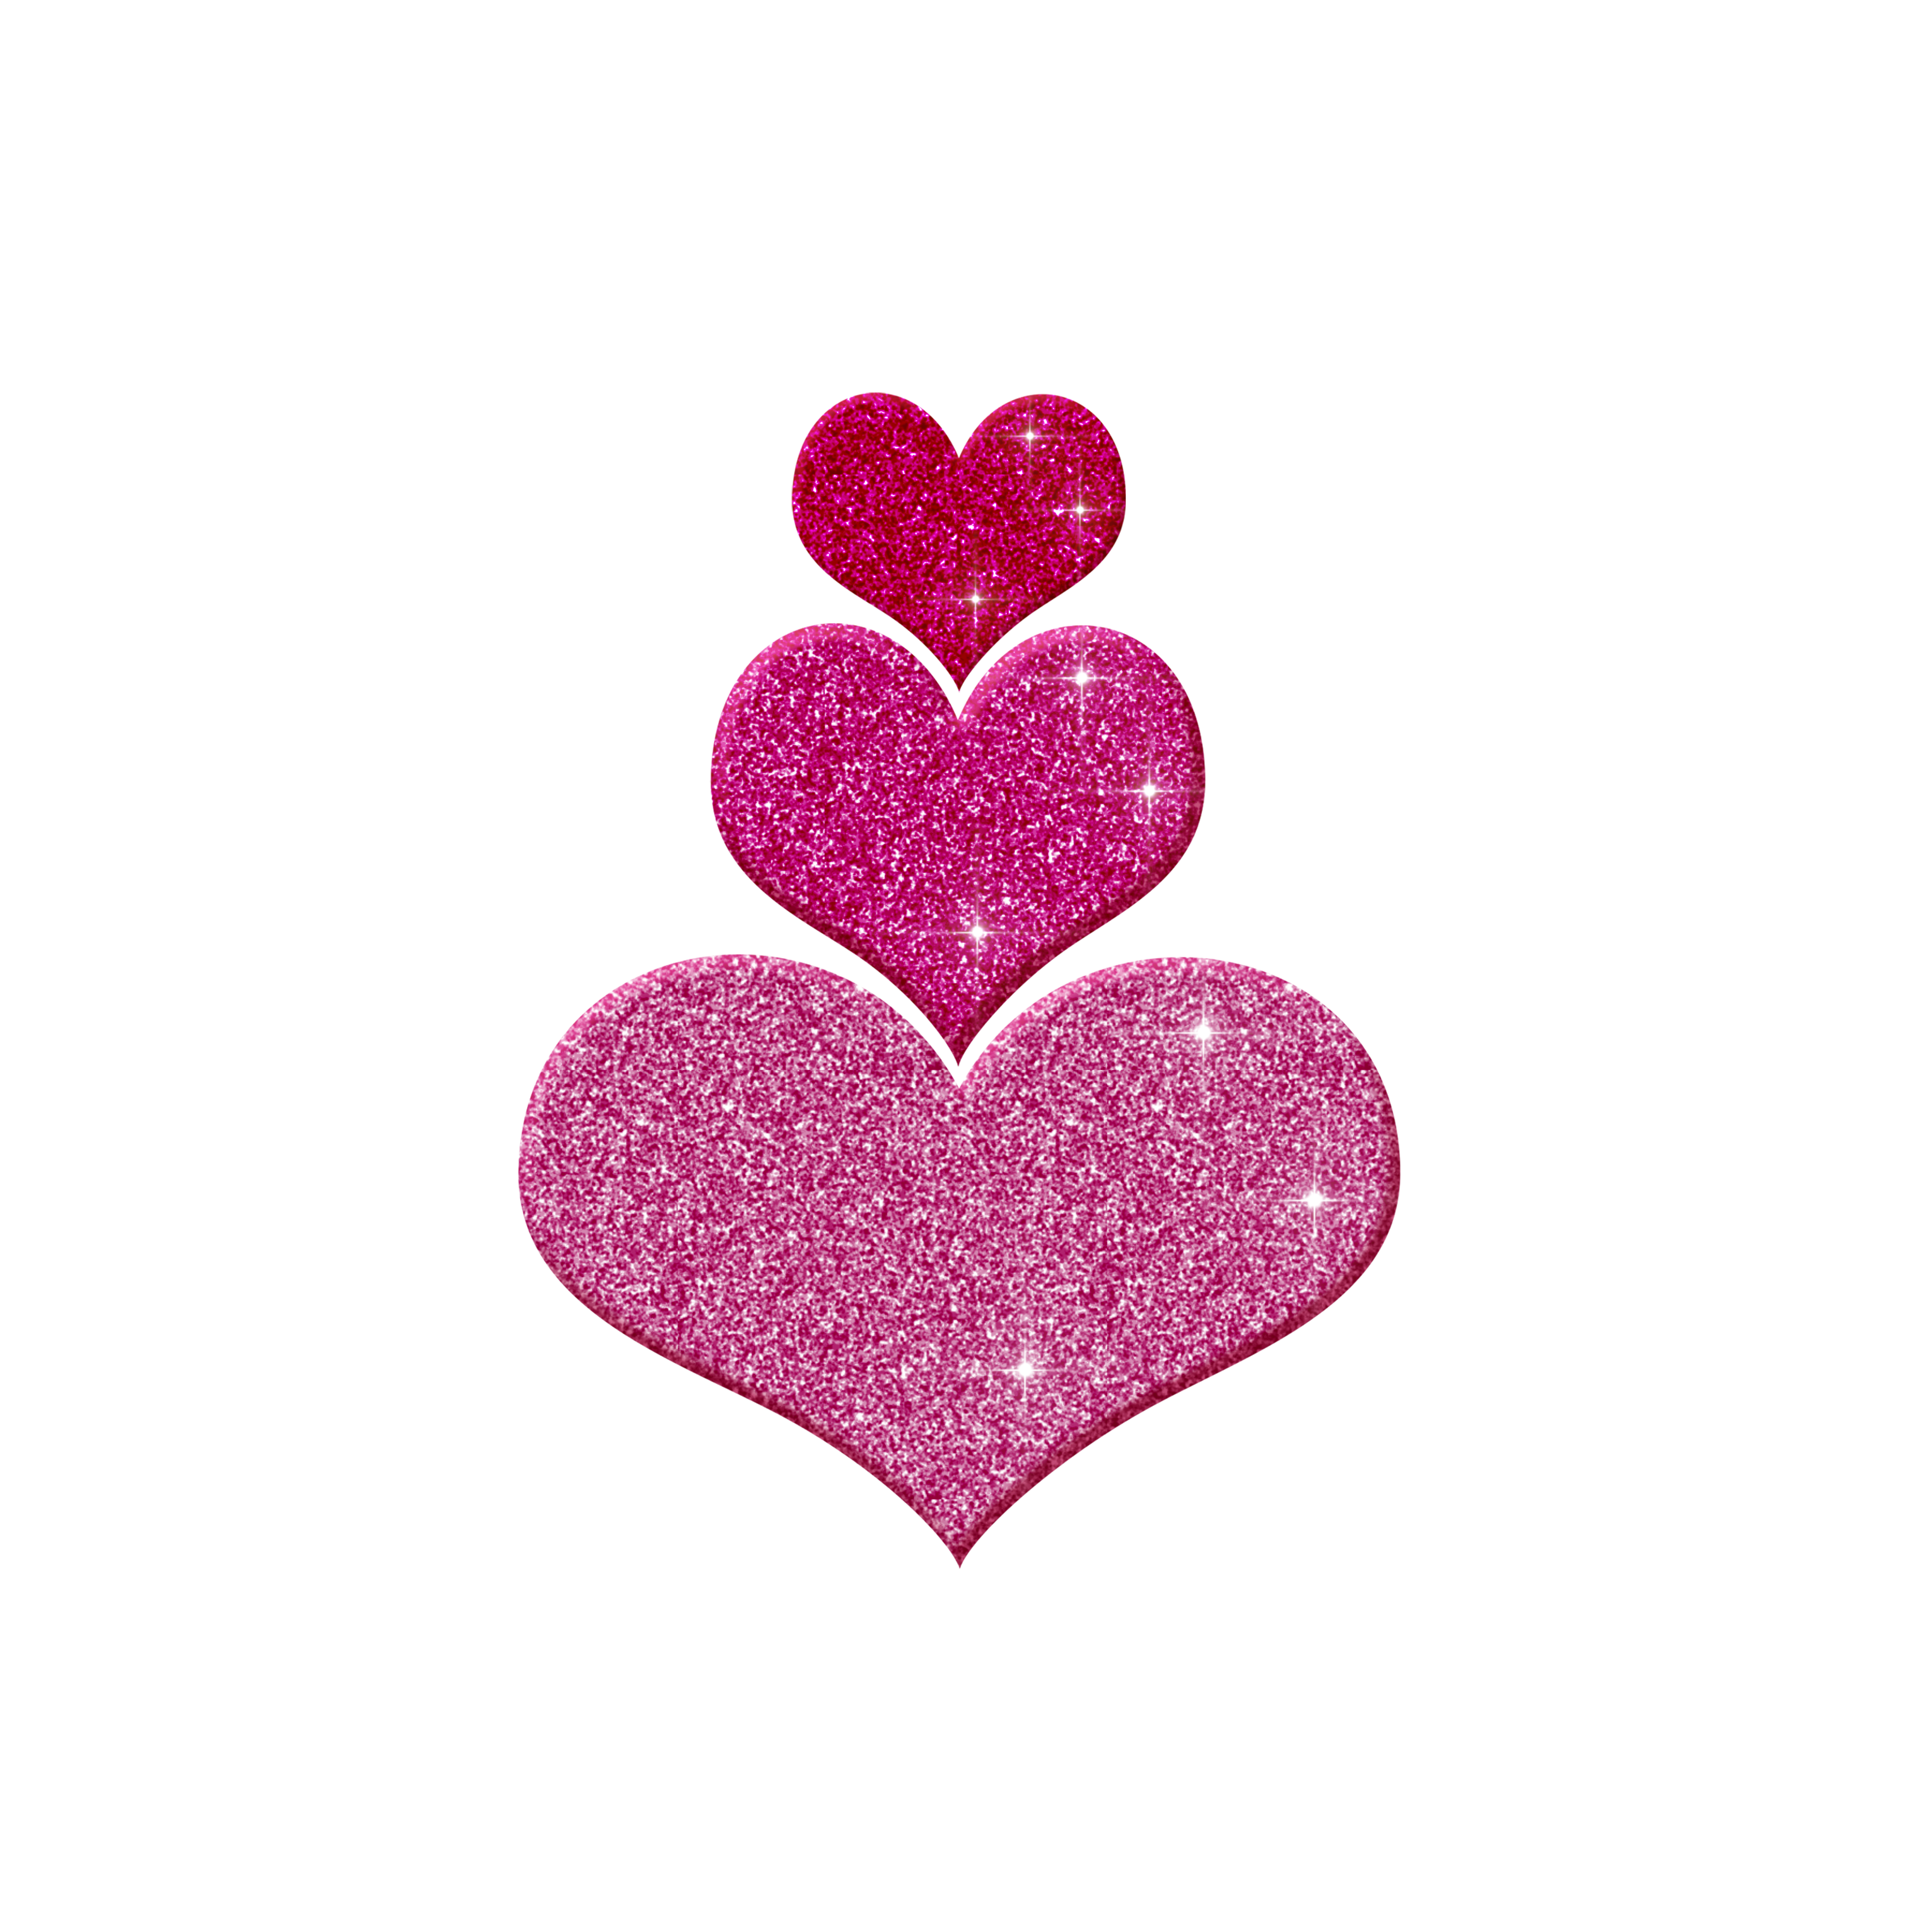 Hearts clipart pink sparkle Pink Free Heart library Creations